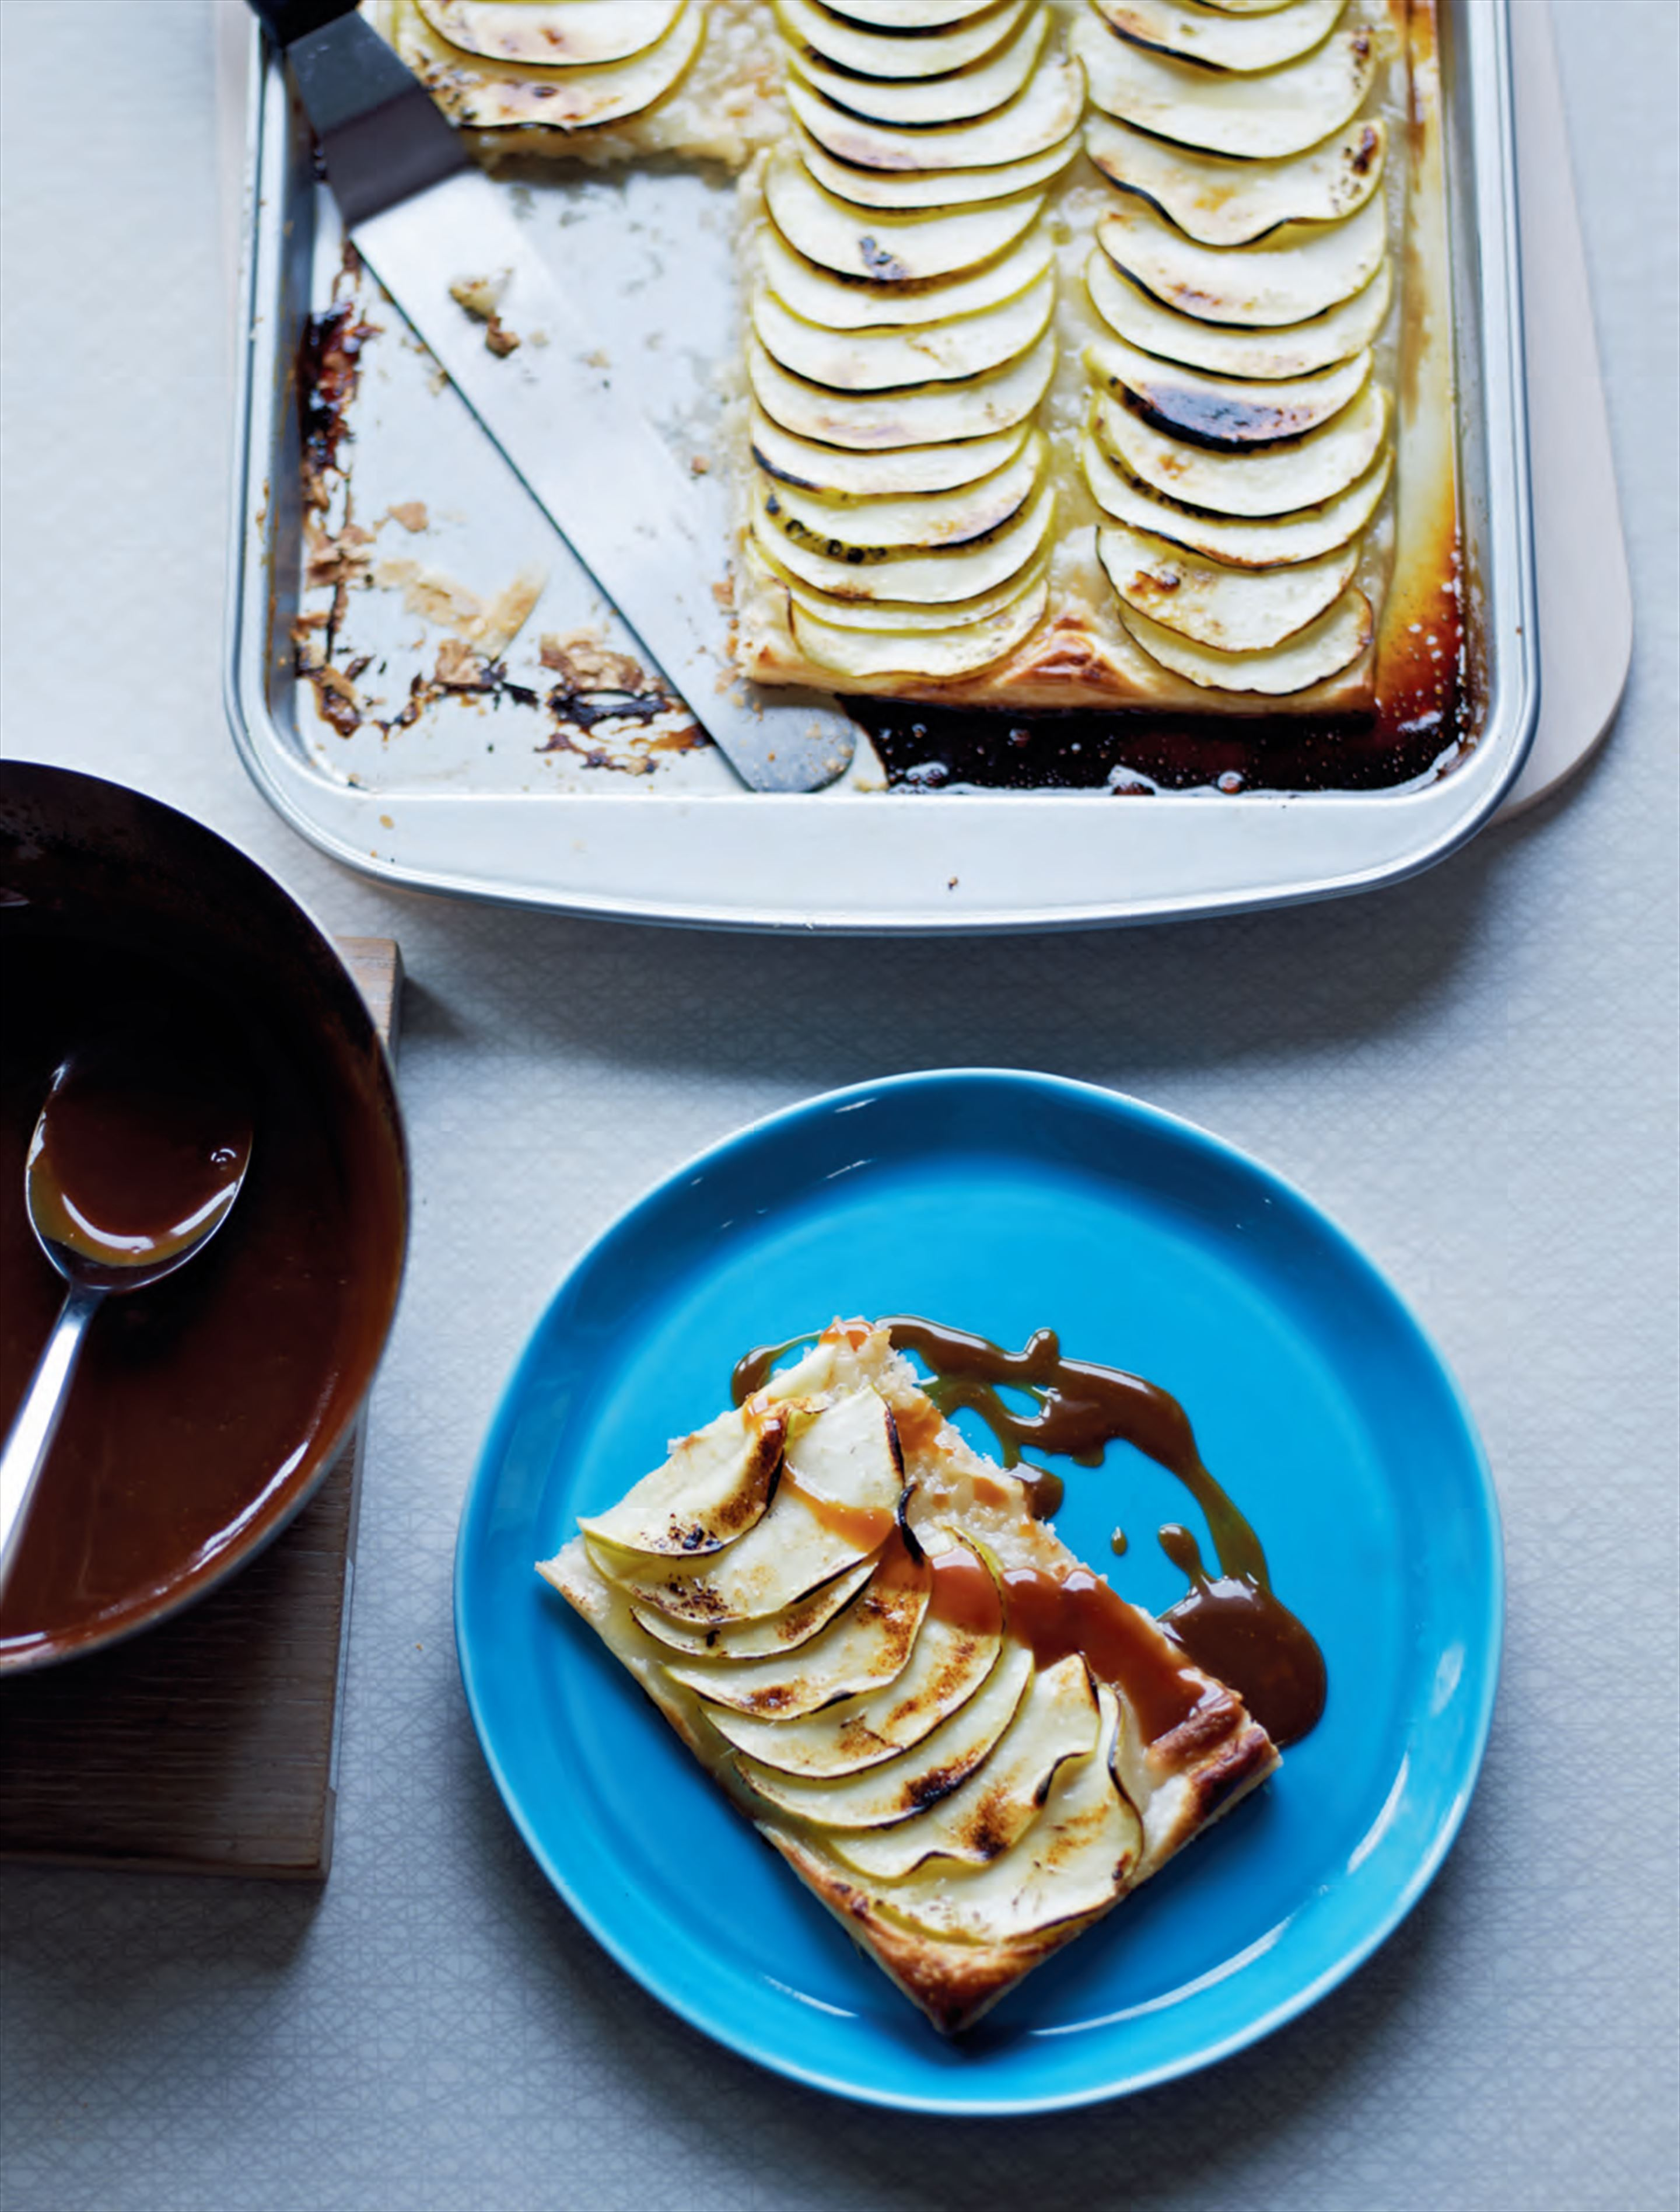 Apple & marzipan tart